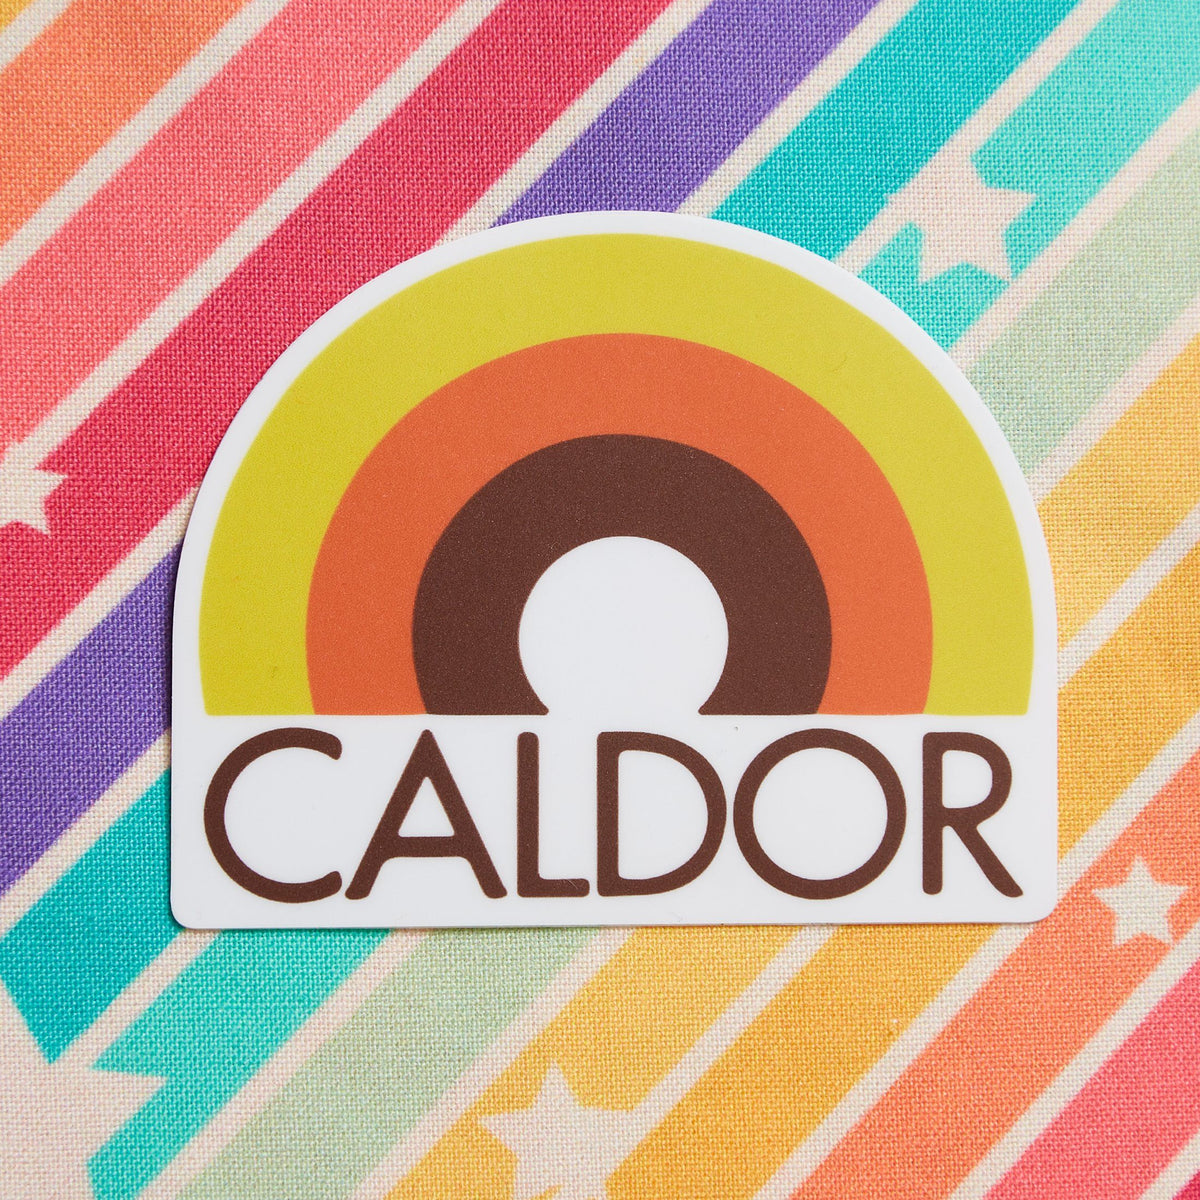 Caldor Vinyl Sticker